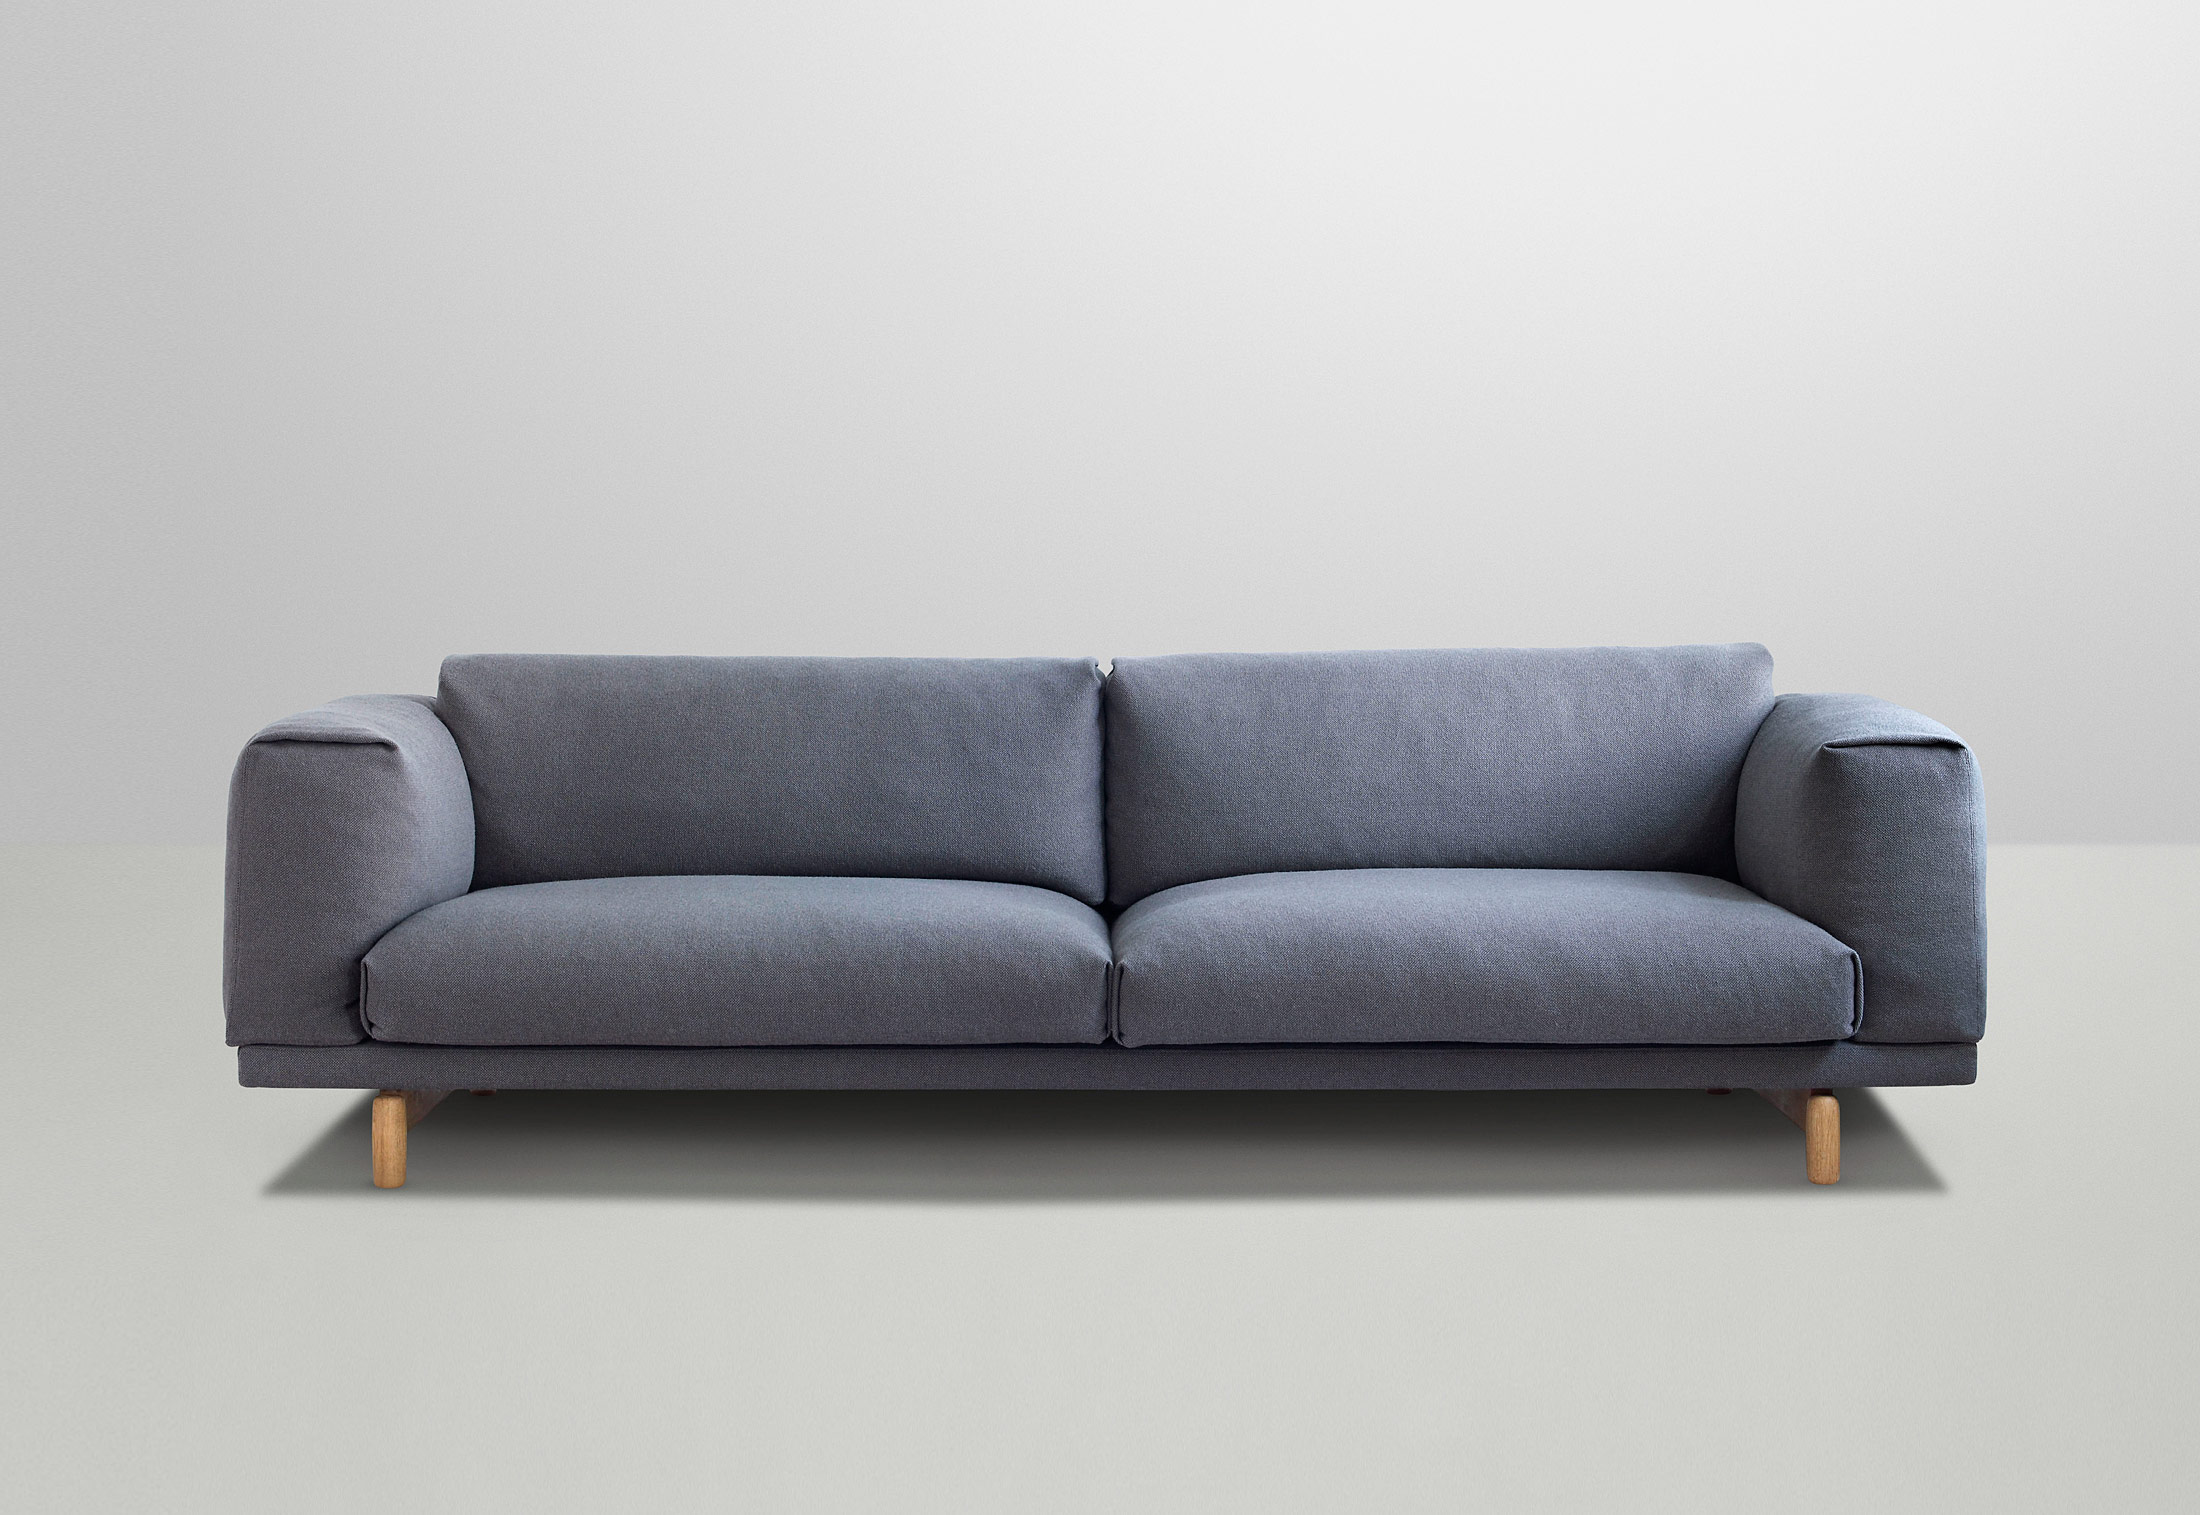 Sofa Modul Stunning Rope Modular Sofa By Normann Copenhagen With